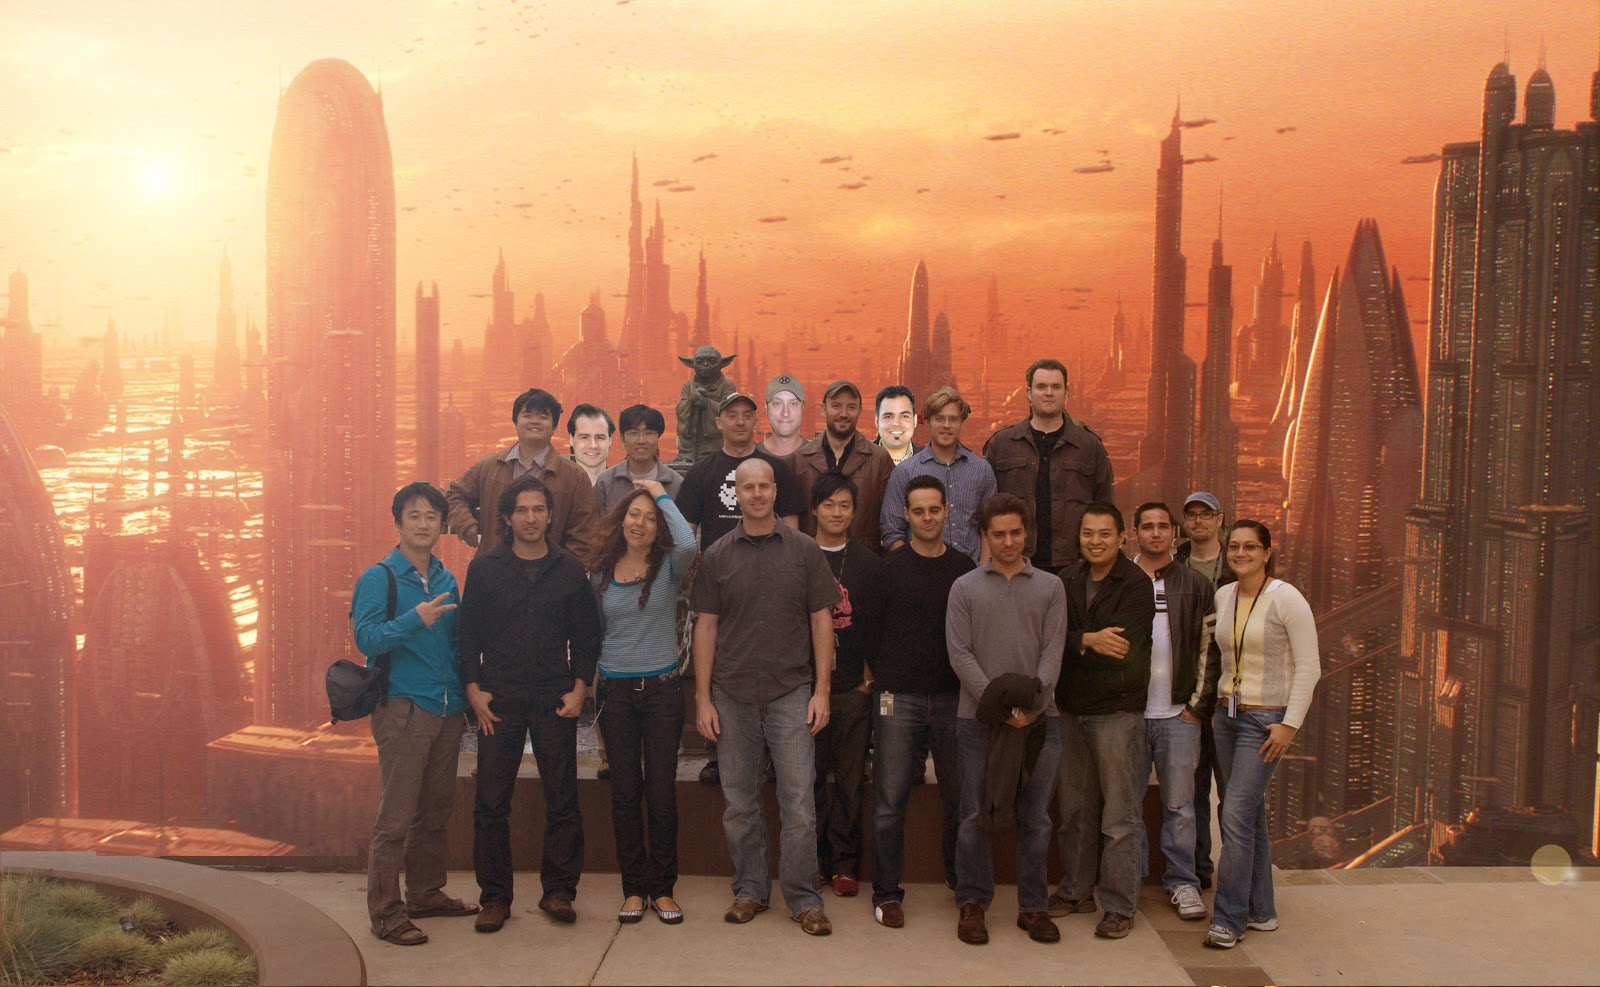 Mirena Rhee & Star Wars artists at Lucasfilm – with Yoda